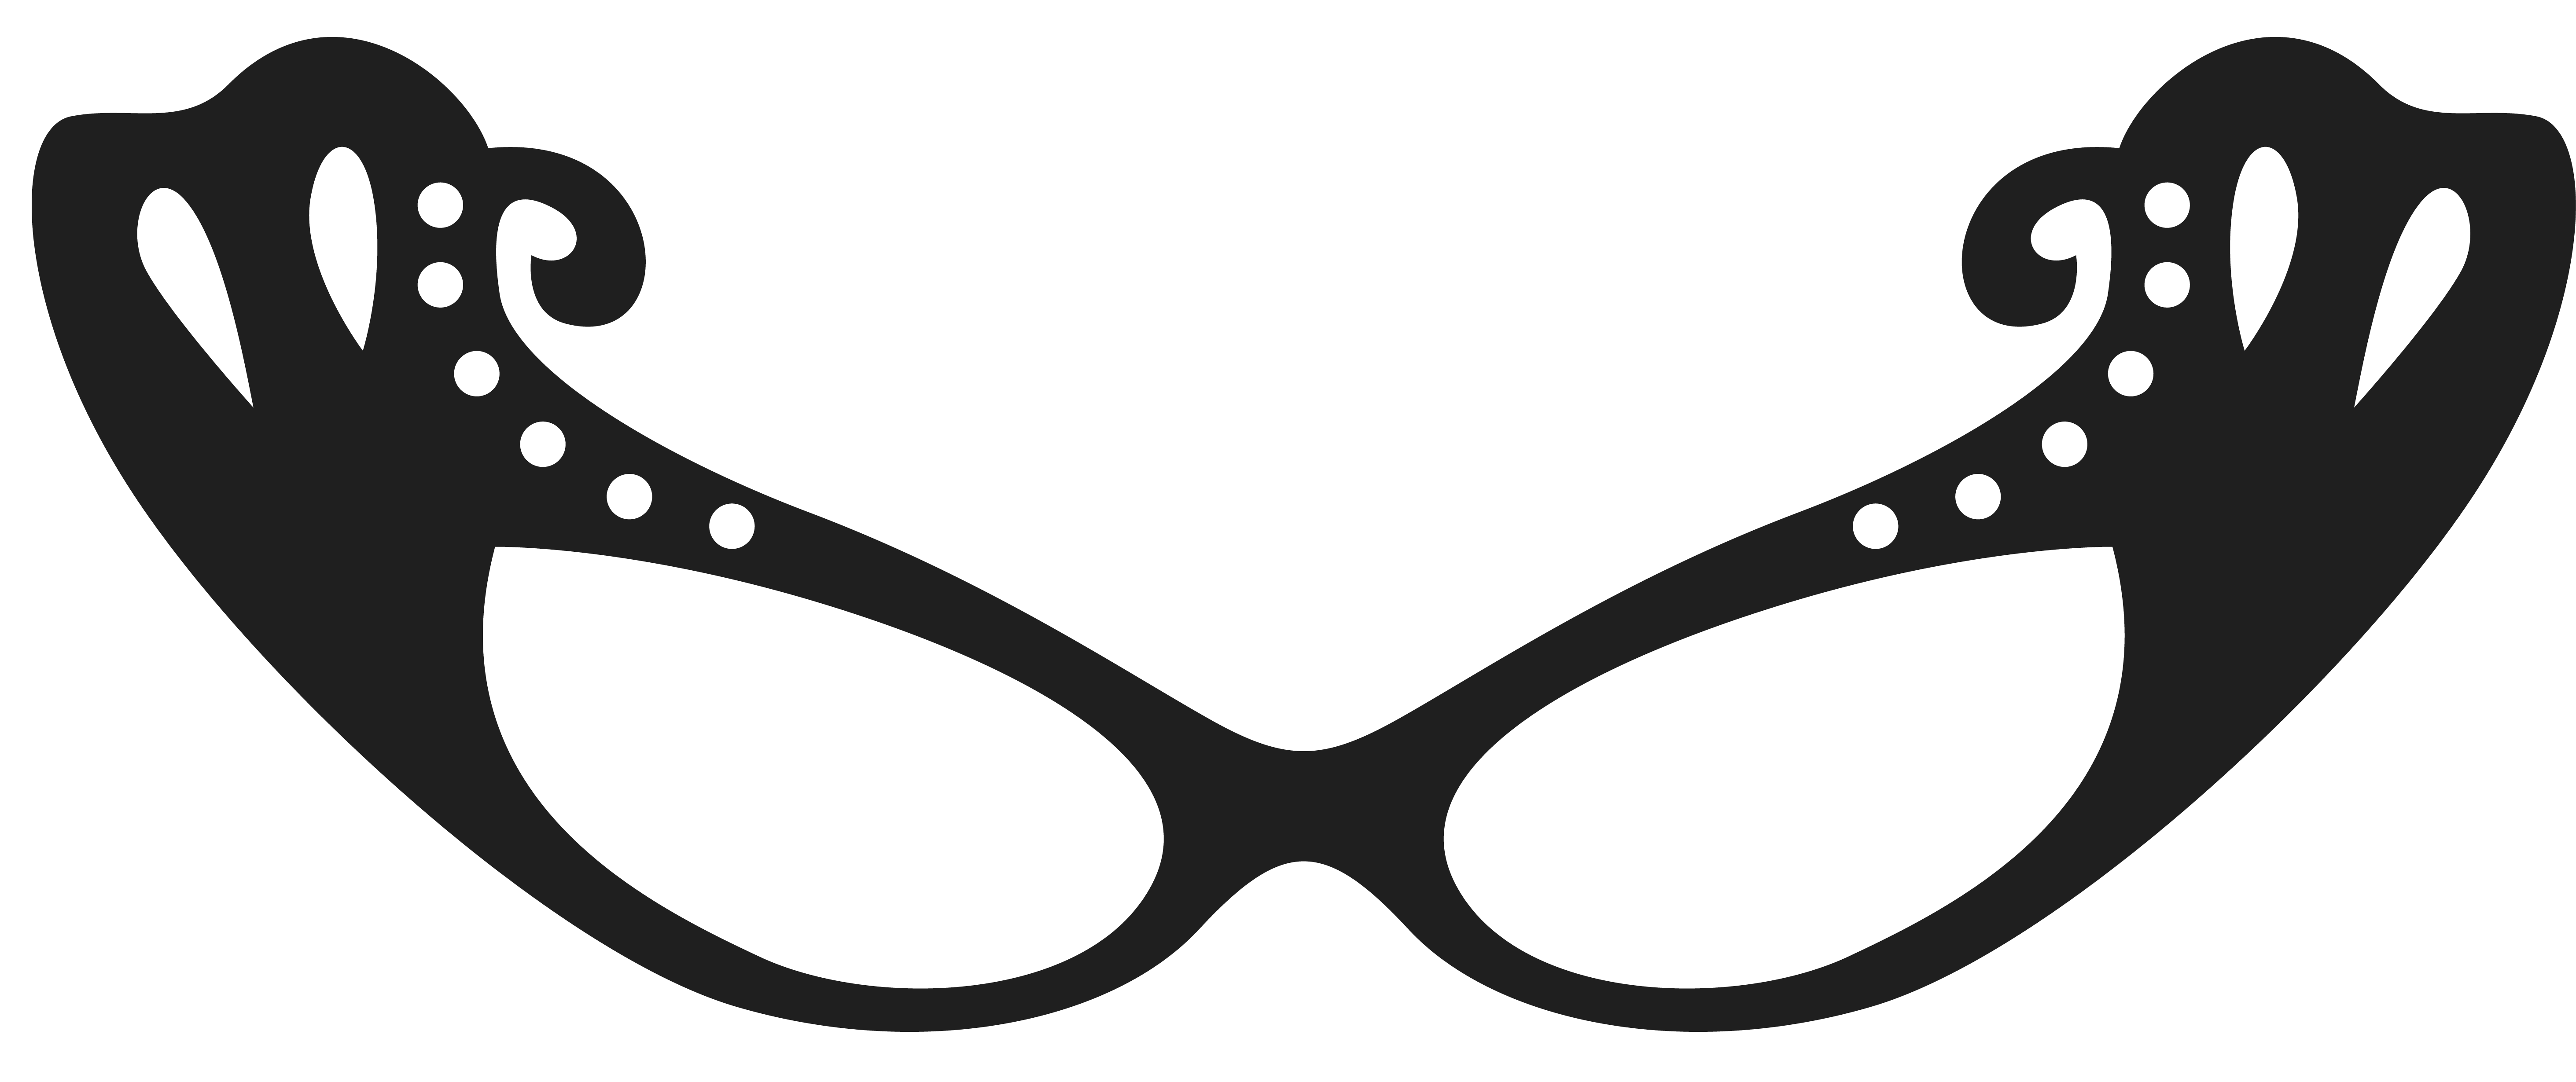 Goofy svg clipart. Movember glasses image gallery